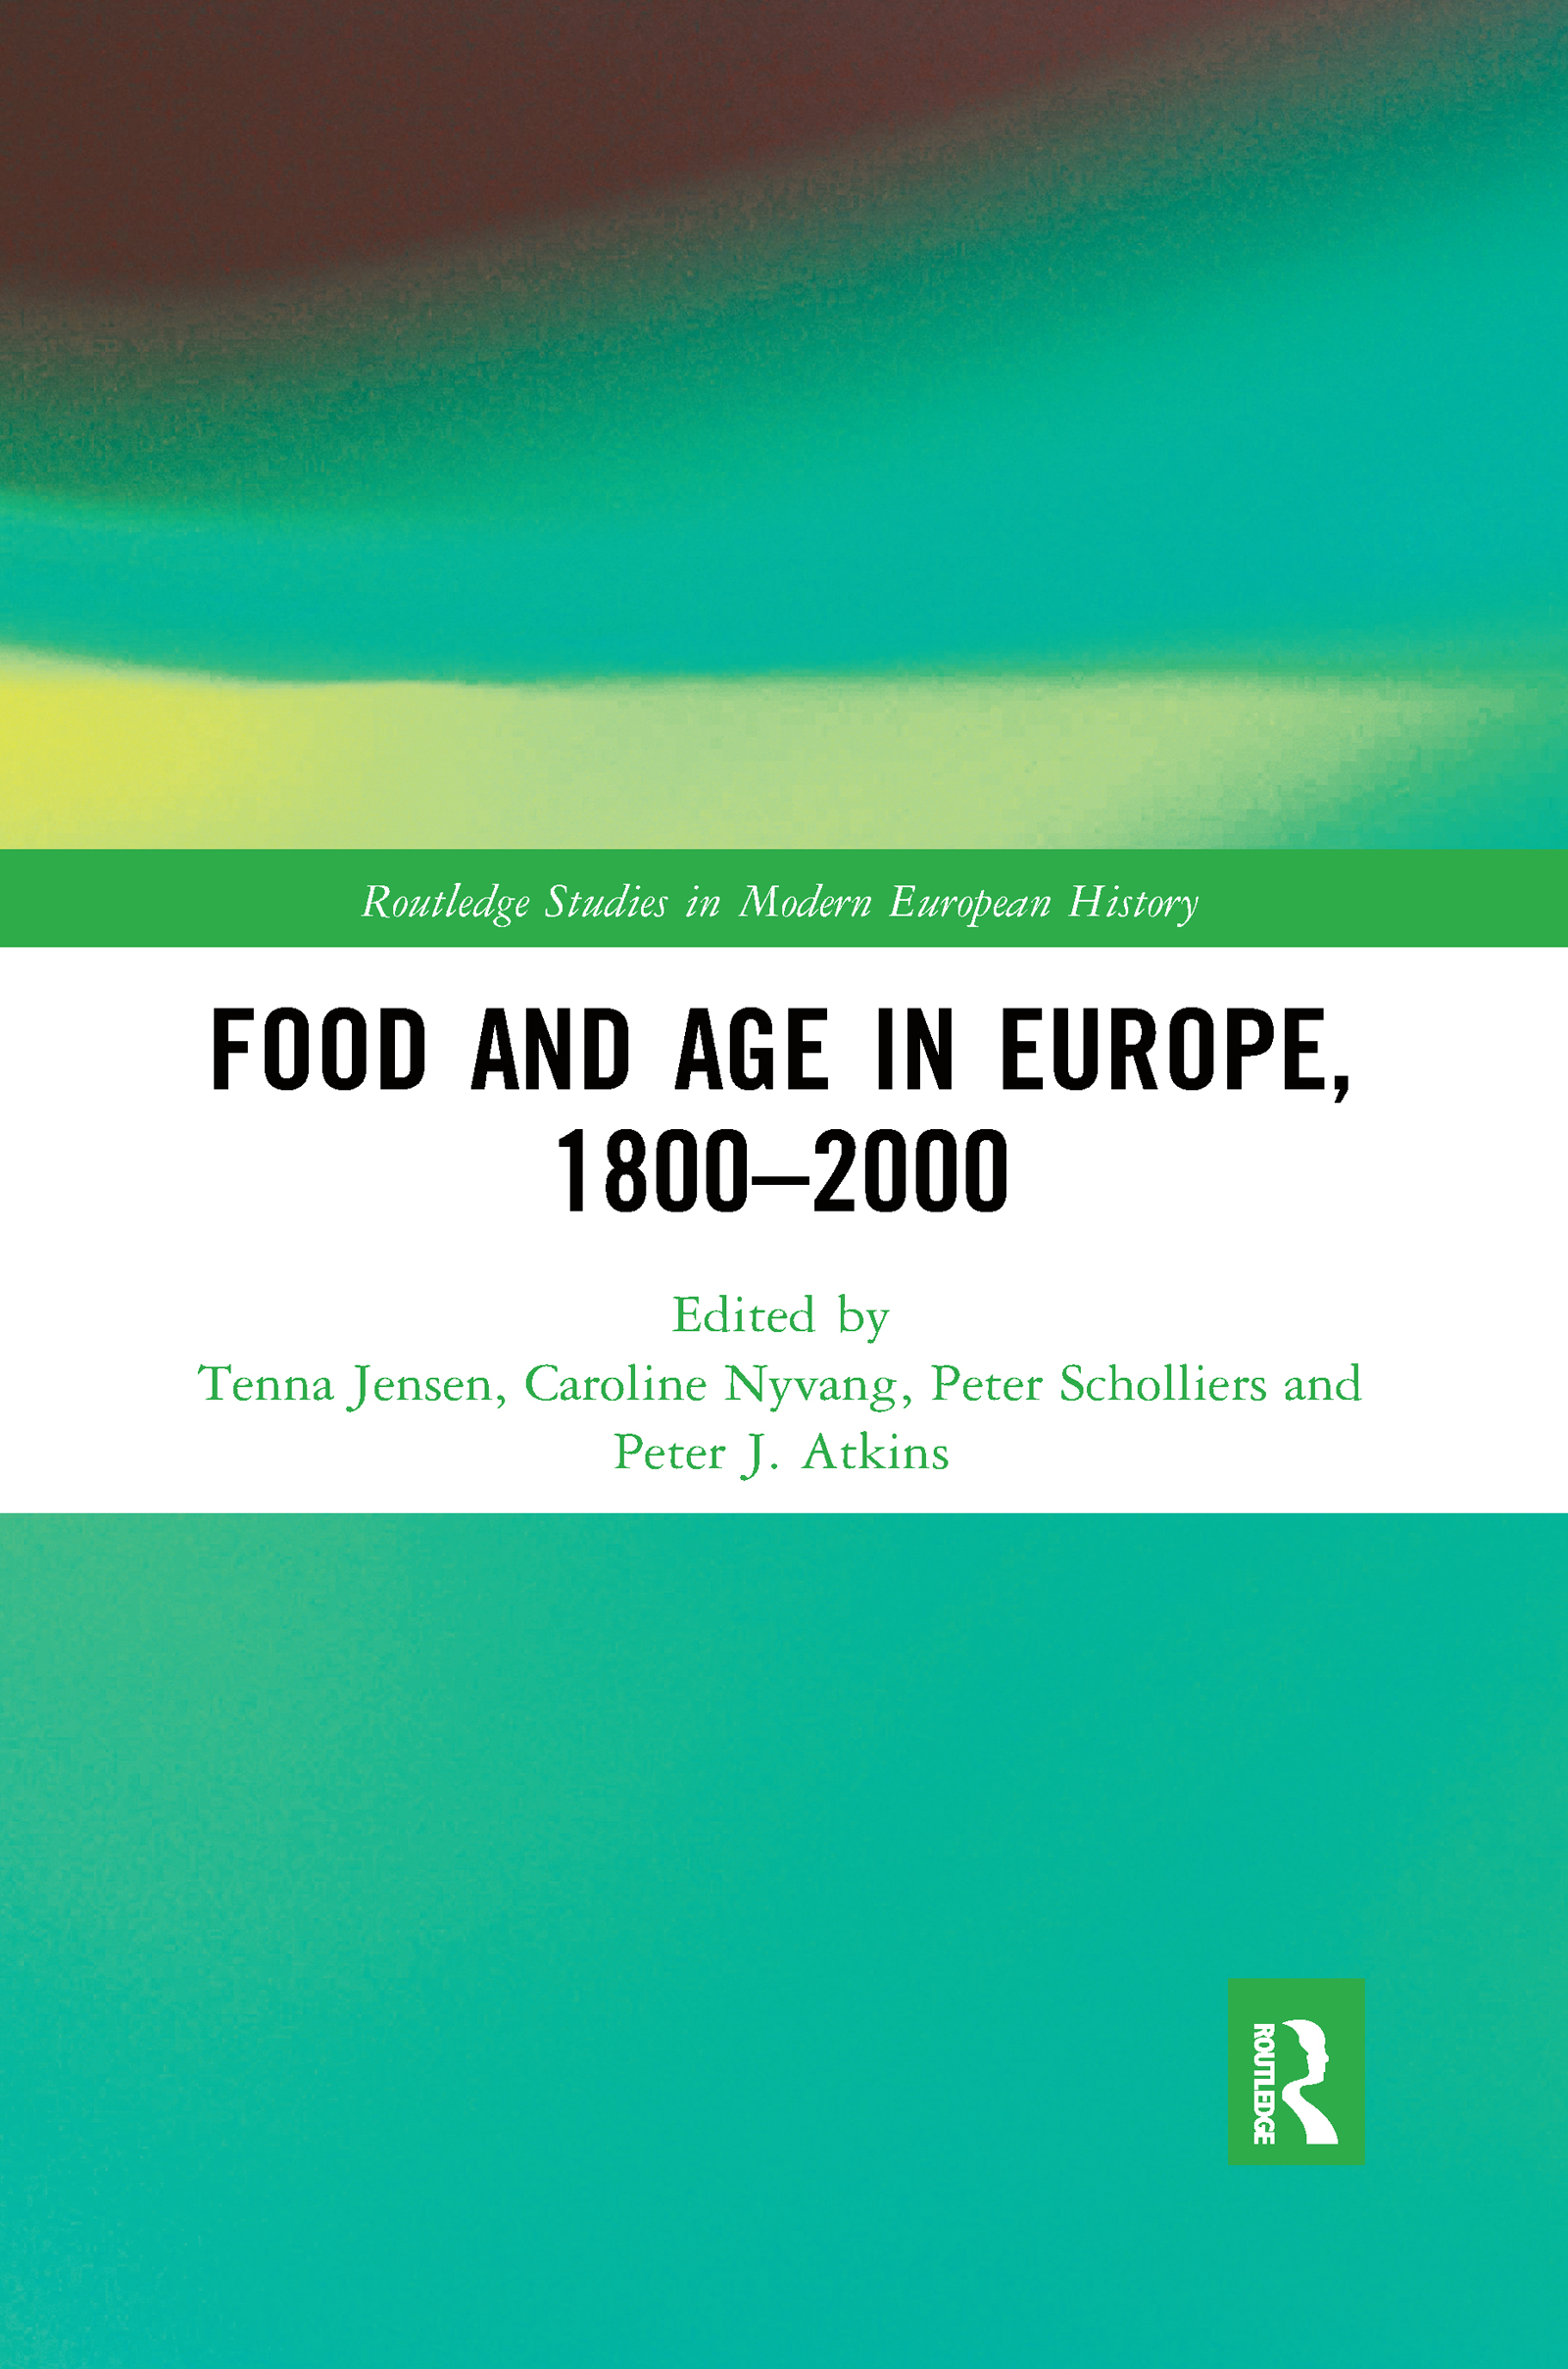 Food and Age in Europe, 1800-2000